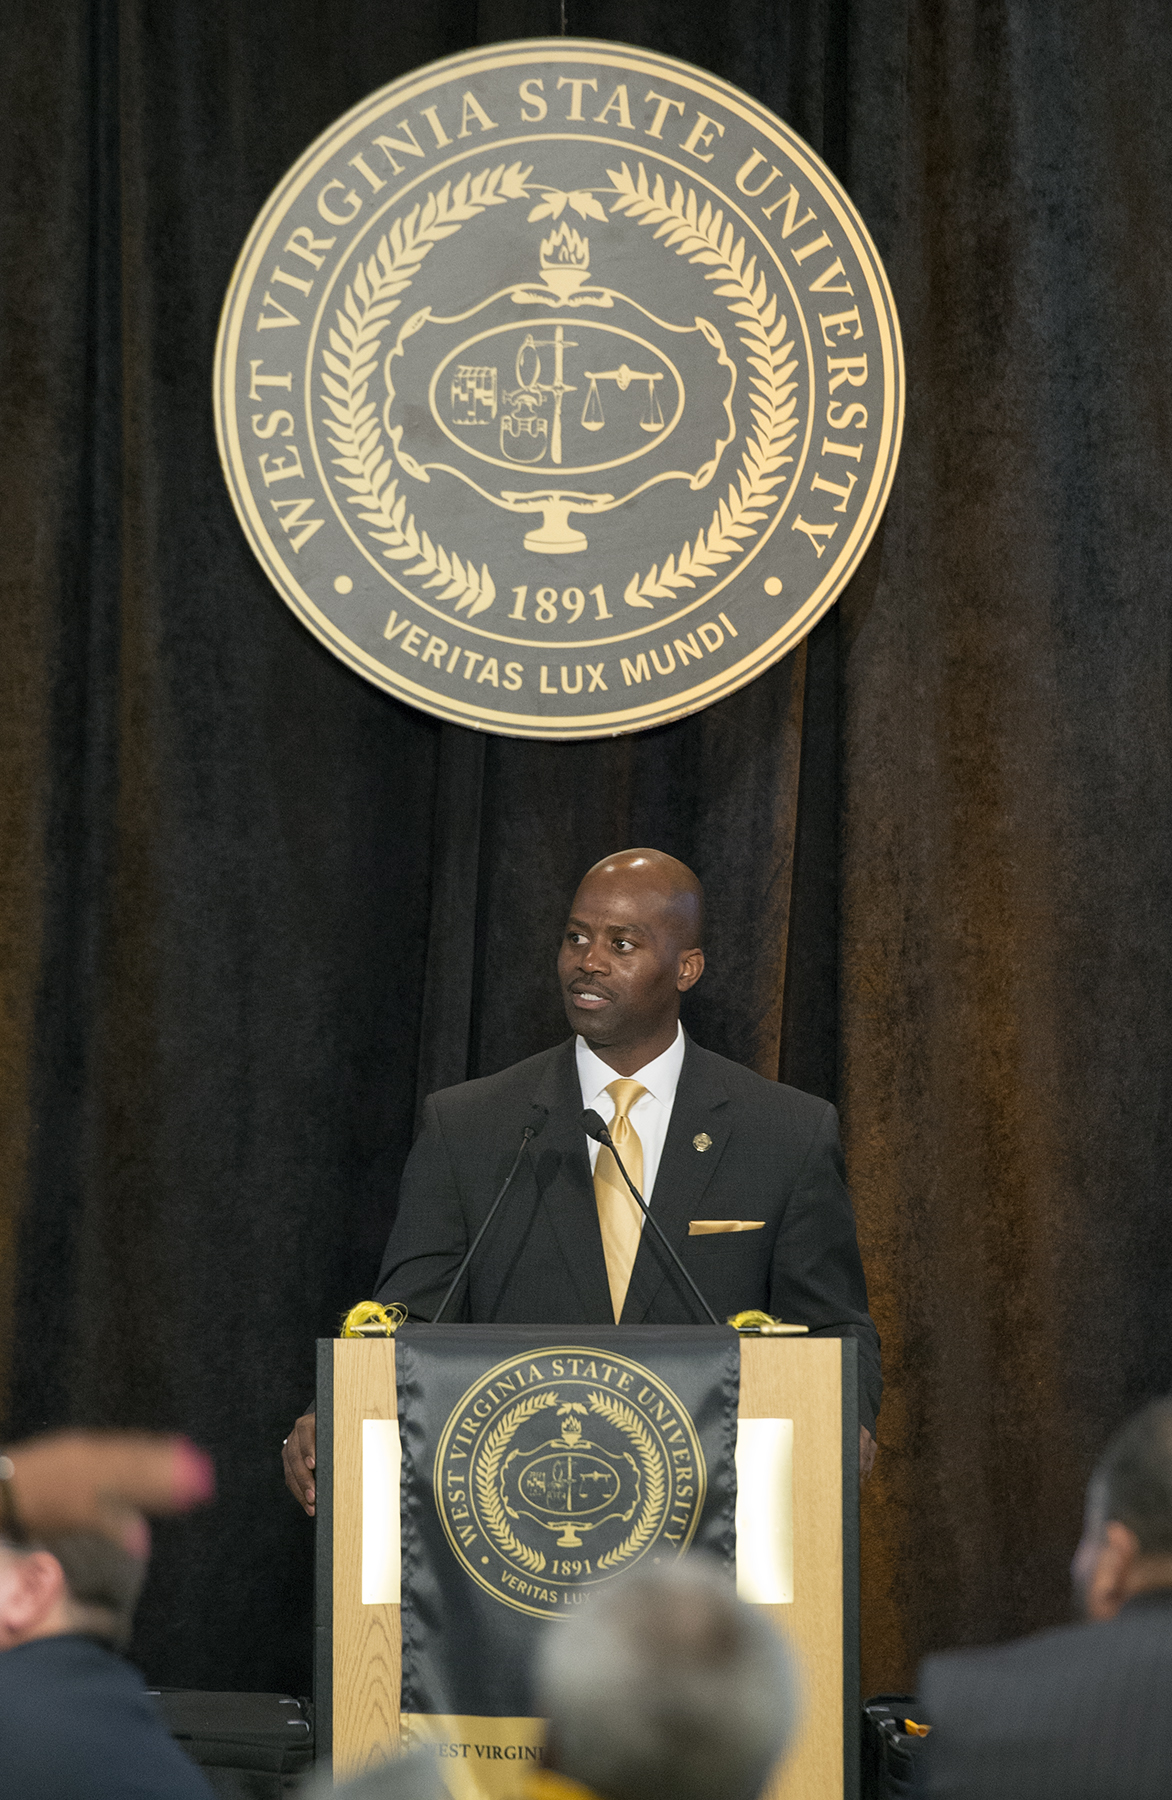 President addresses alumni during Homecoming